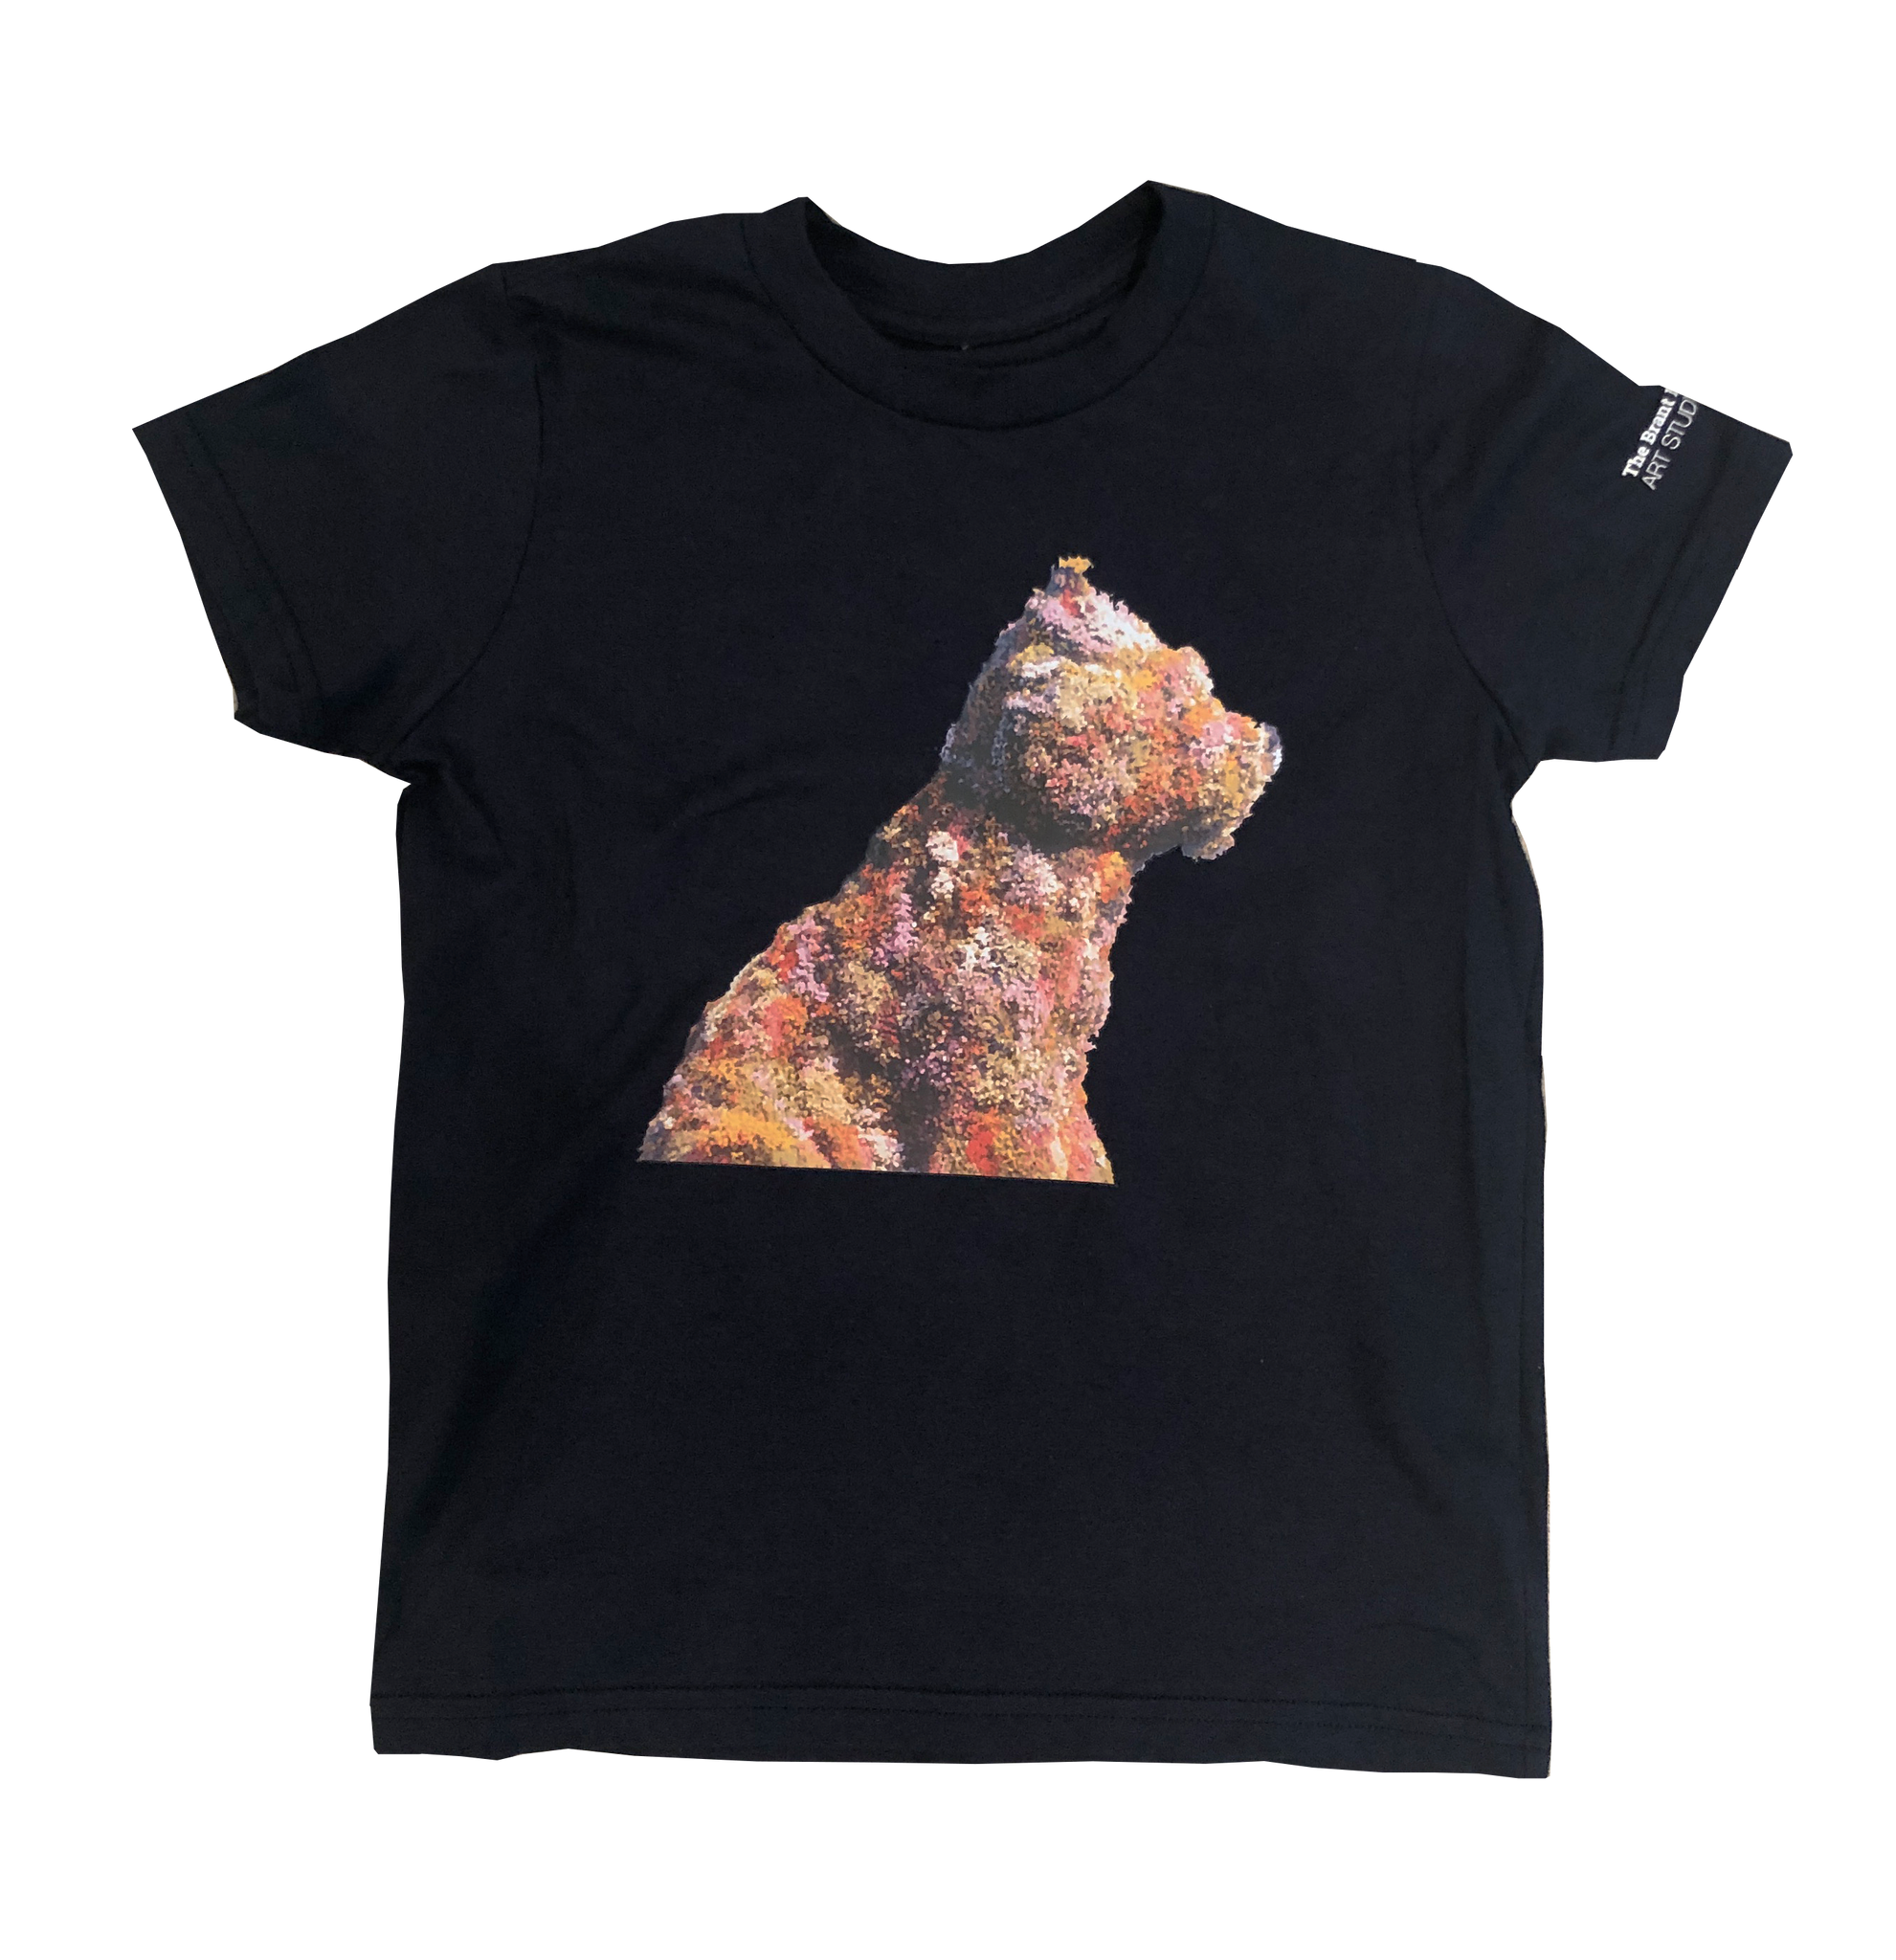 Jeff Koons Puppy T-Shirt (Kids) - The Brant Foundation Shop